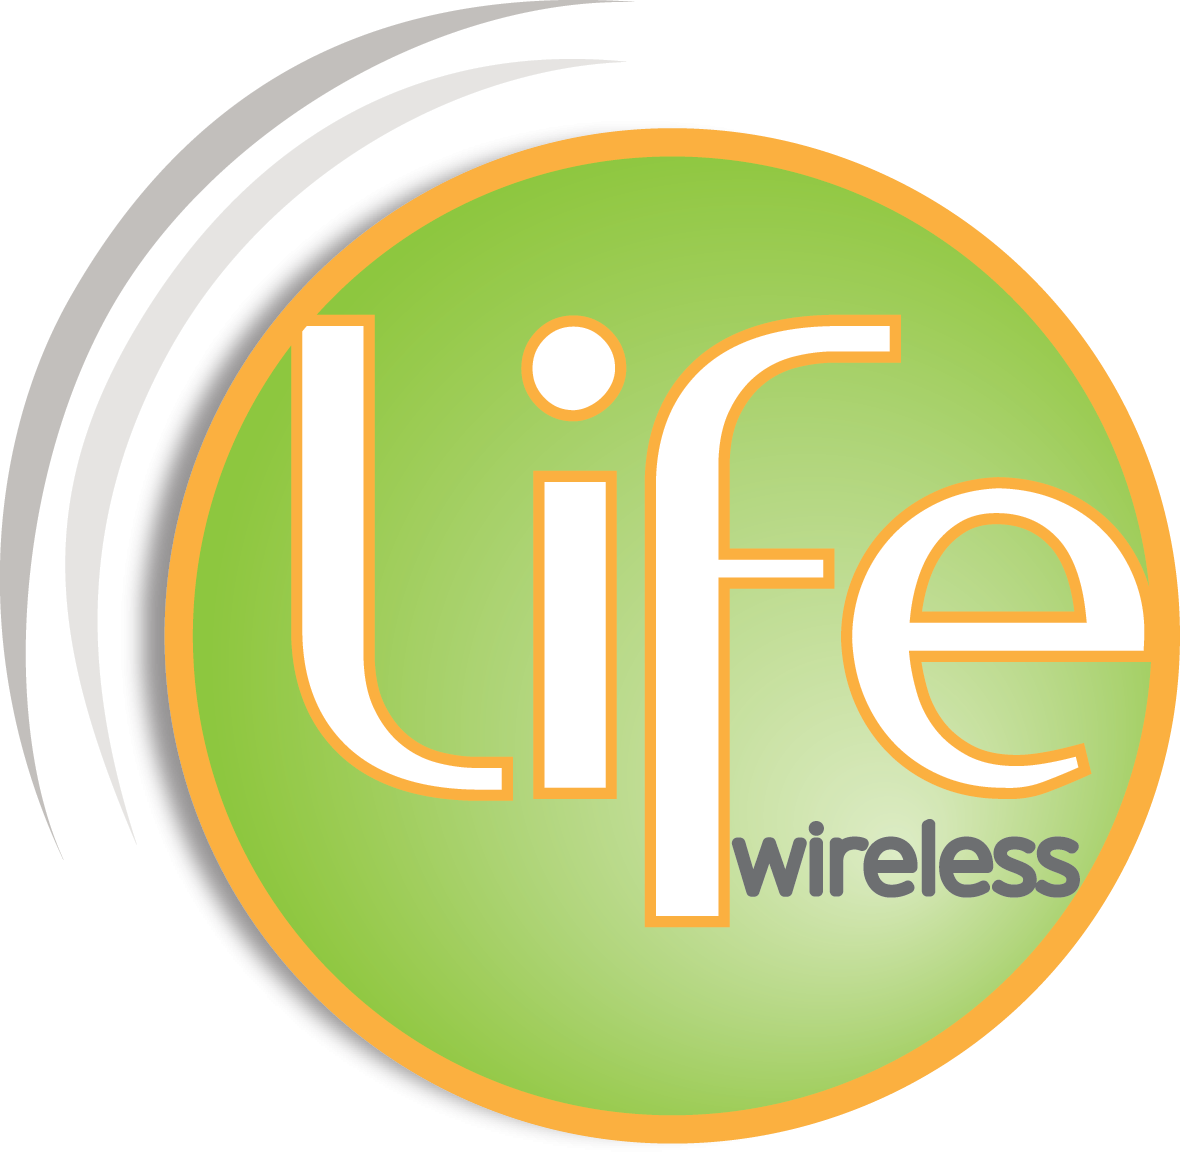 lifewireless-logo_1_2.png